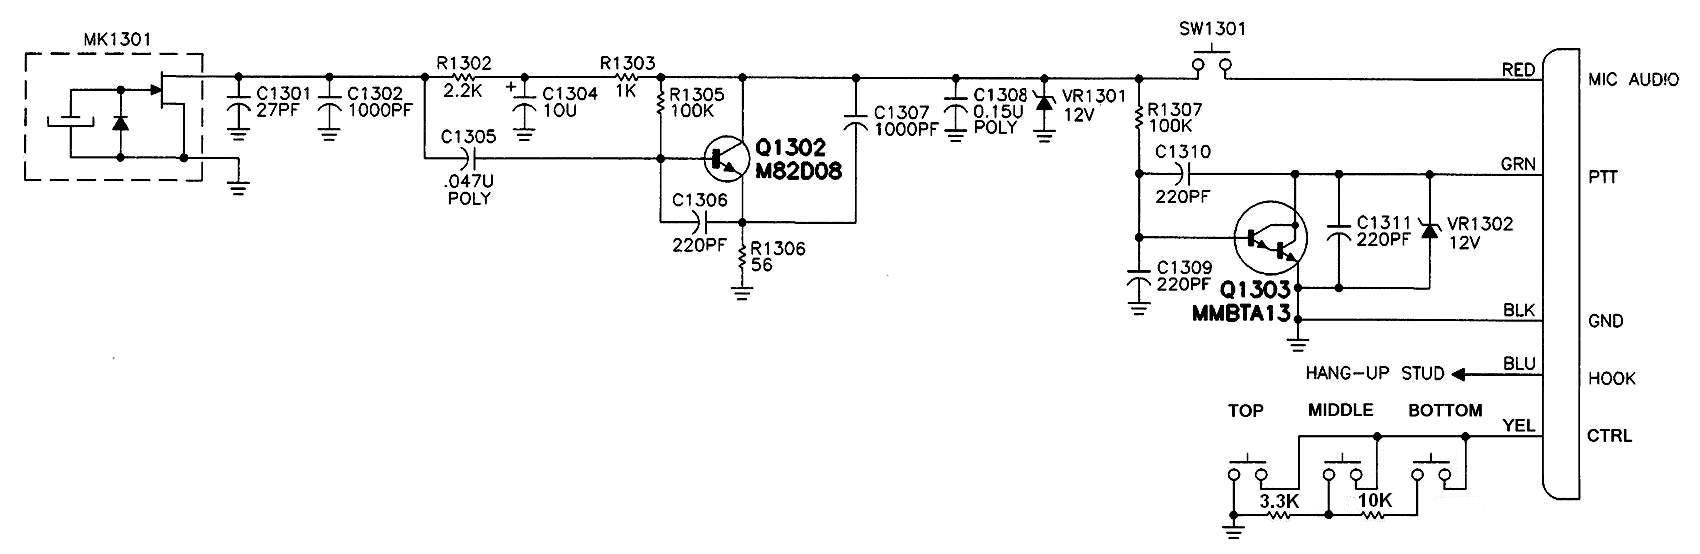 motorola mic wiring diagram   27 wiring diagram images